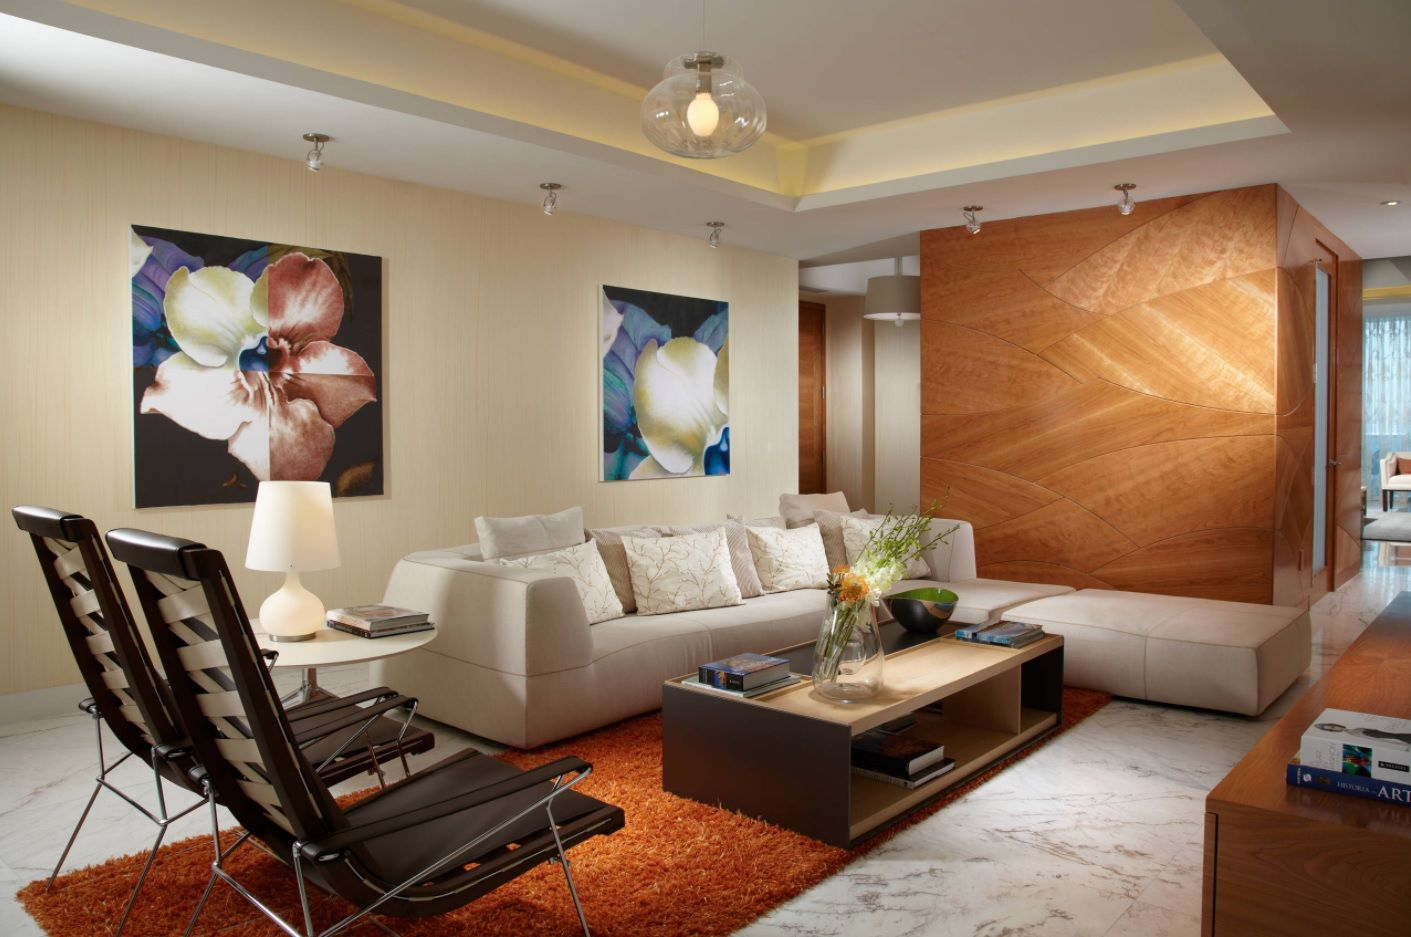 Zen Interior Design Concept for Your Home. Mix of materials and colors in the living room